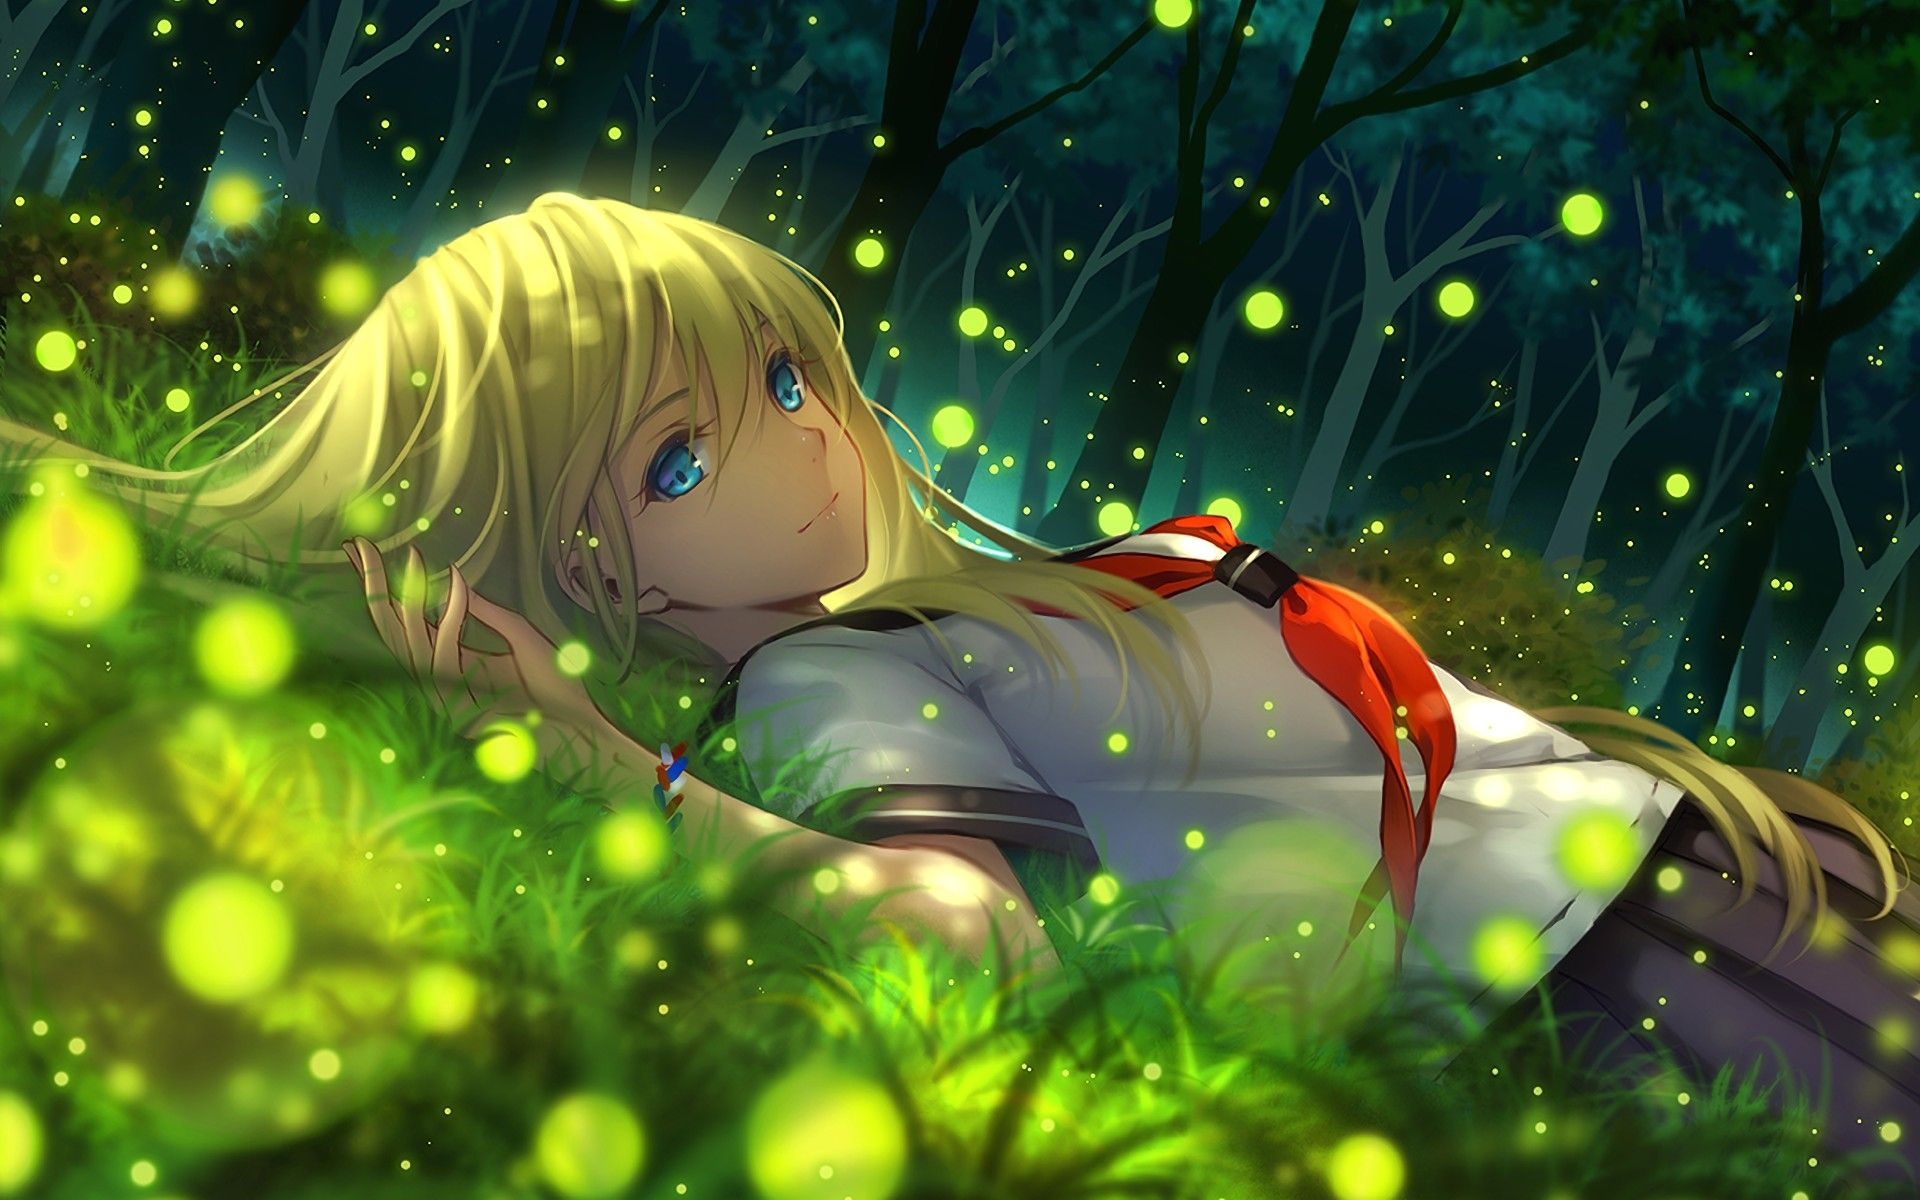 Green Anime Wallpapers Top Free Green Anime Backgrounds Wallpaperaccess